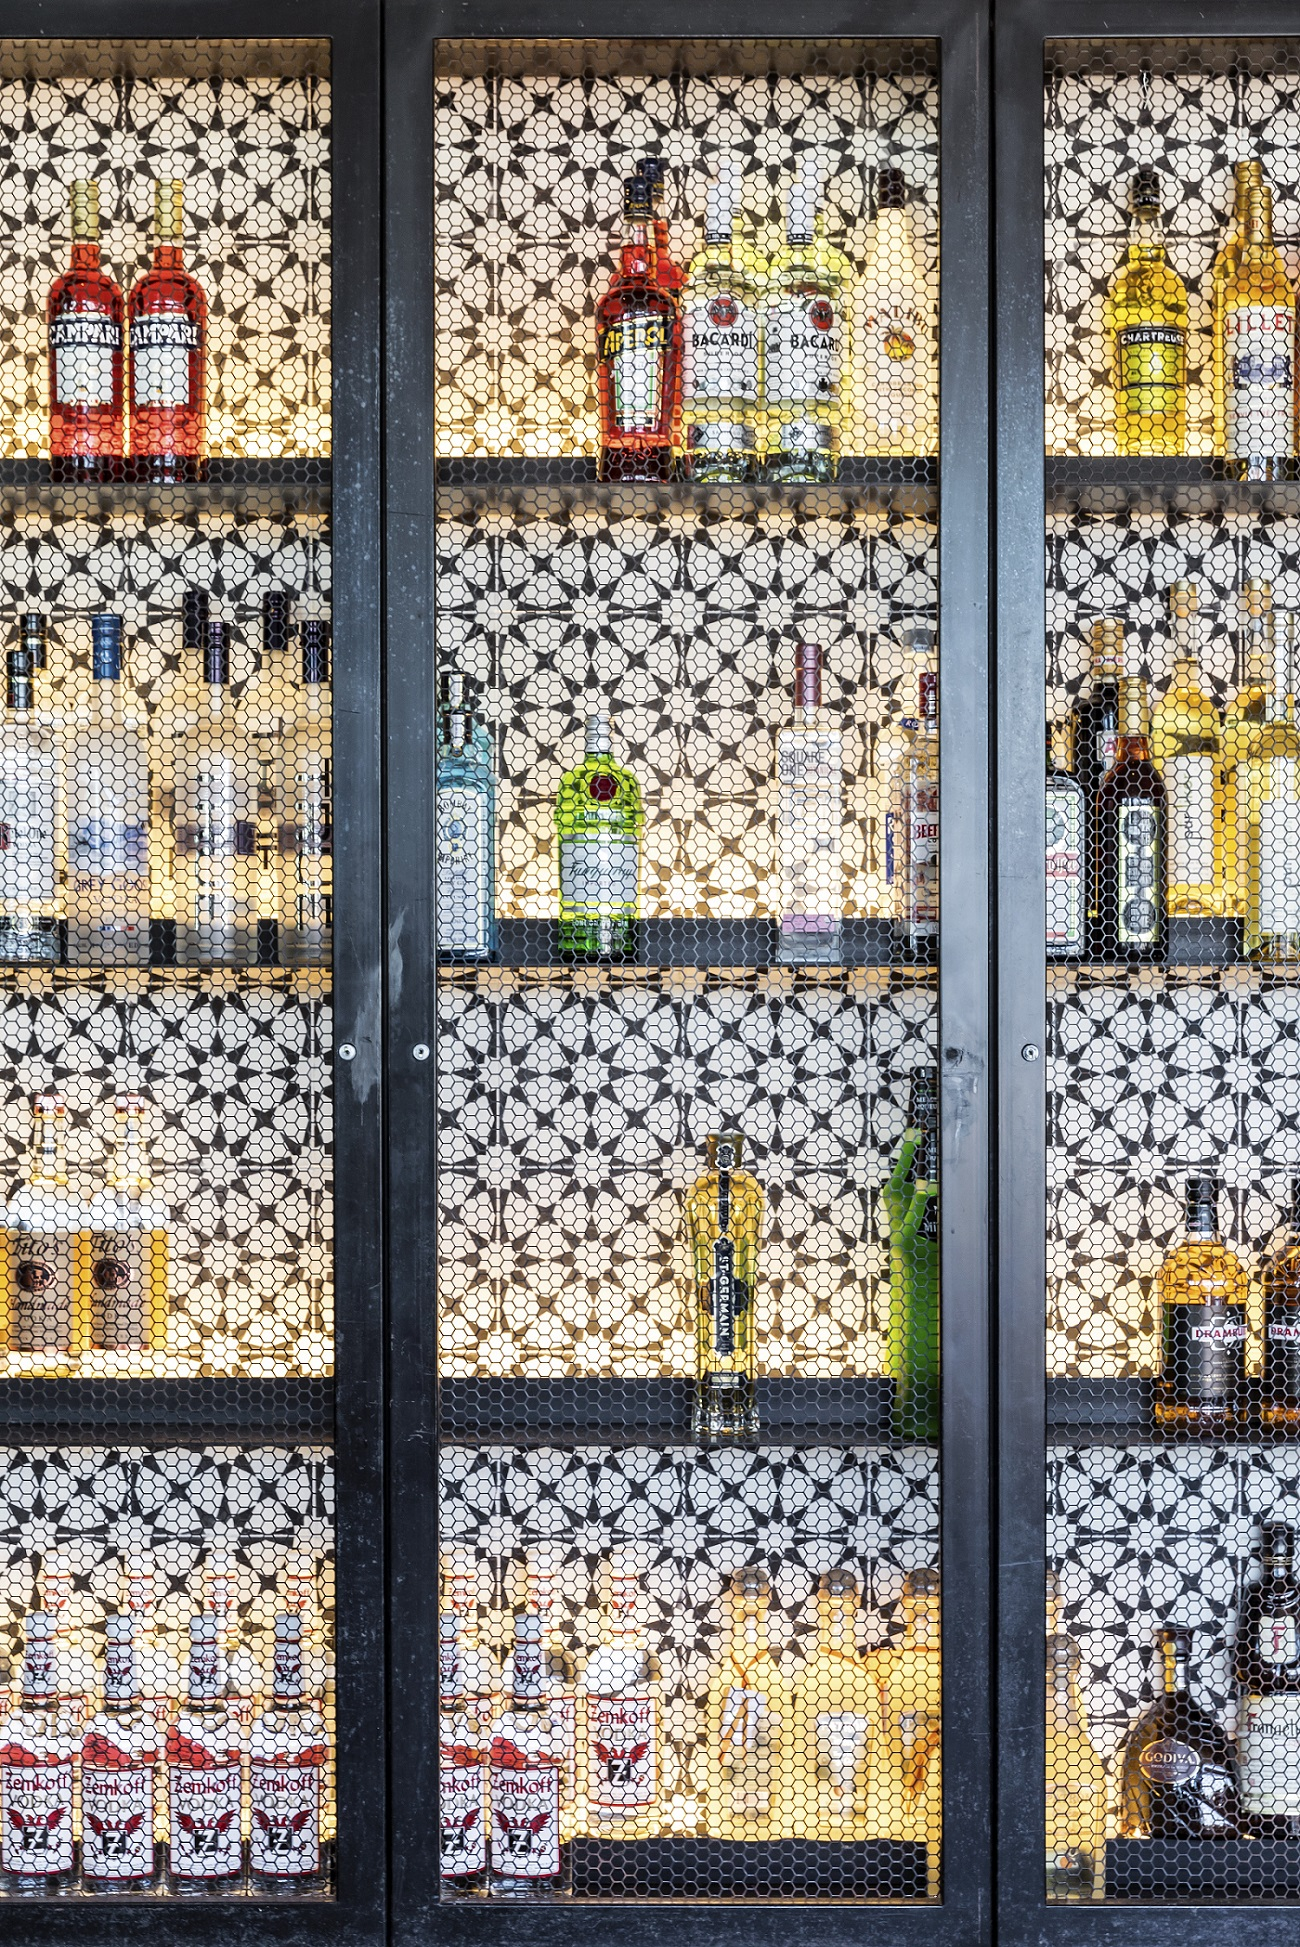 shelves of alcohol bottles behind fancy glass doors - new high rise apartments NYC